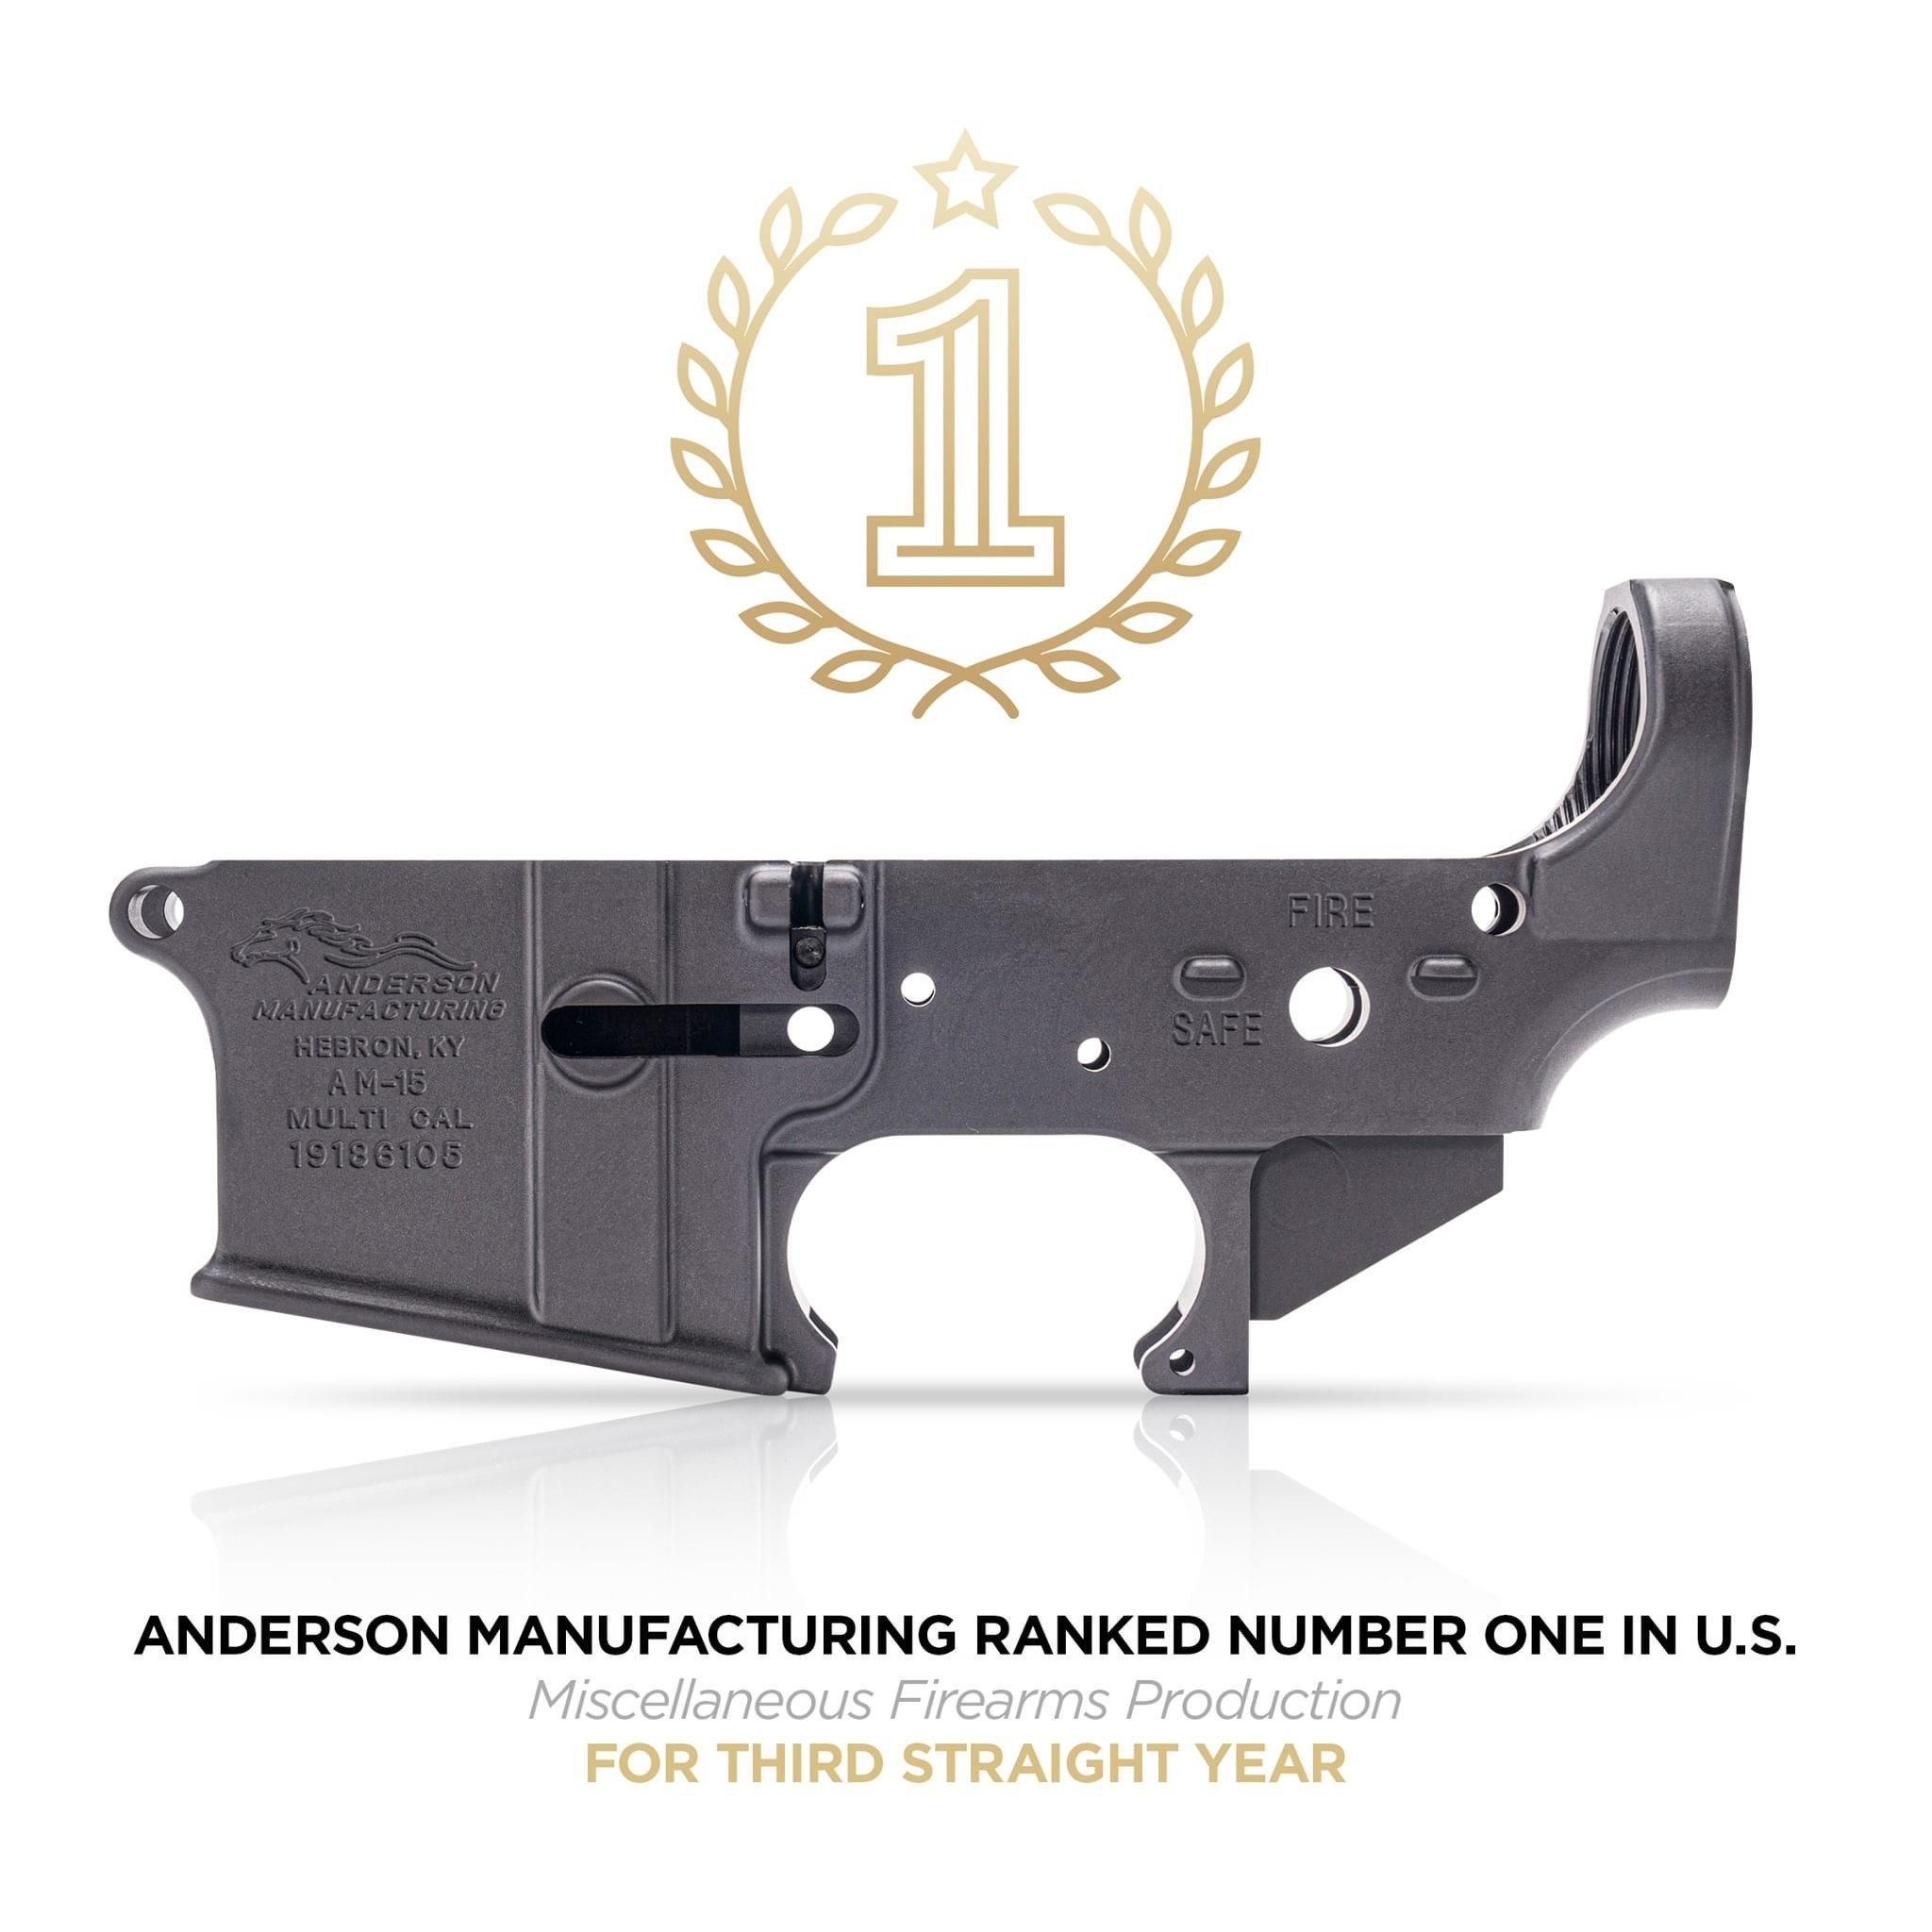 ANDERSON-LOWER-PROMO